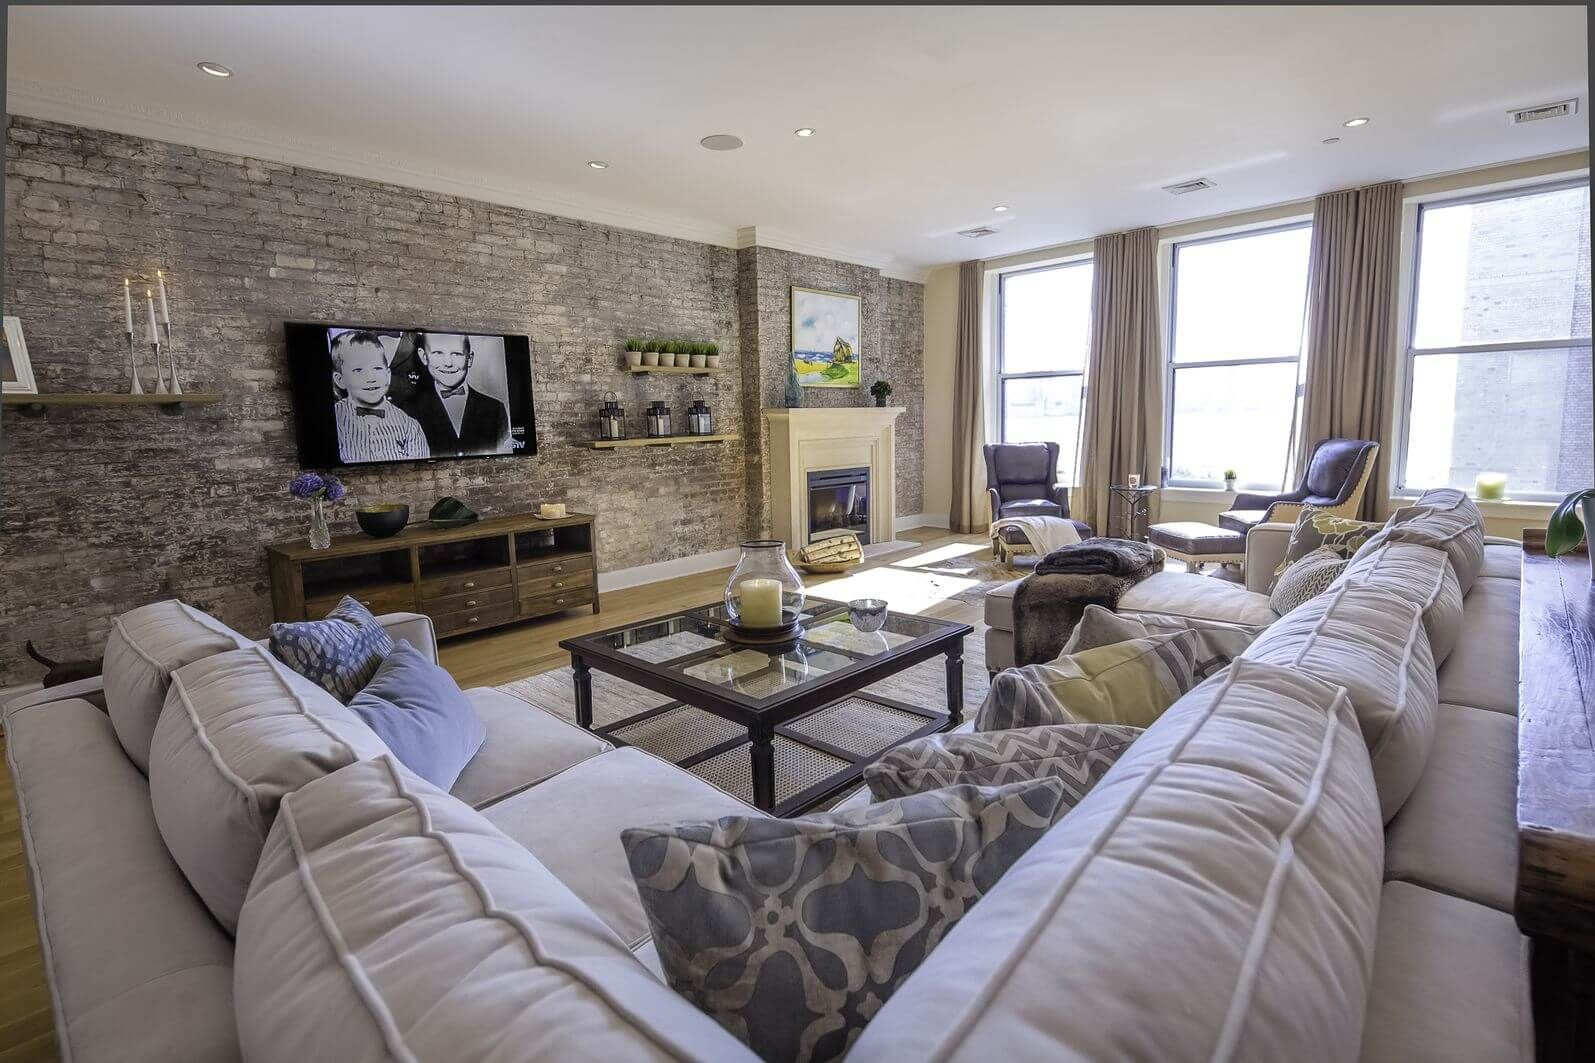 38 Types Of Sectional Sofas 2021 Buying Guide Family Room Sectional Large Sectional Sofa Large Family Rooms